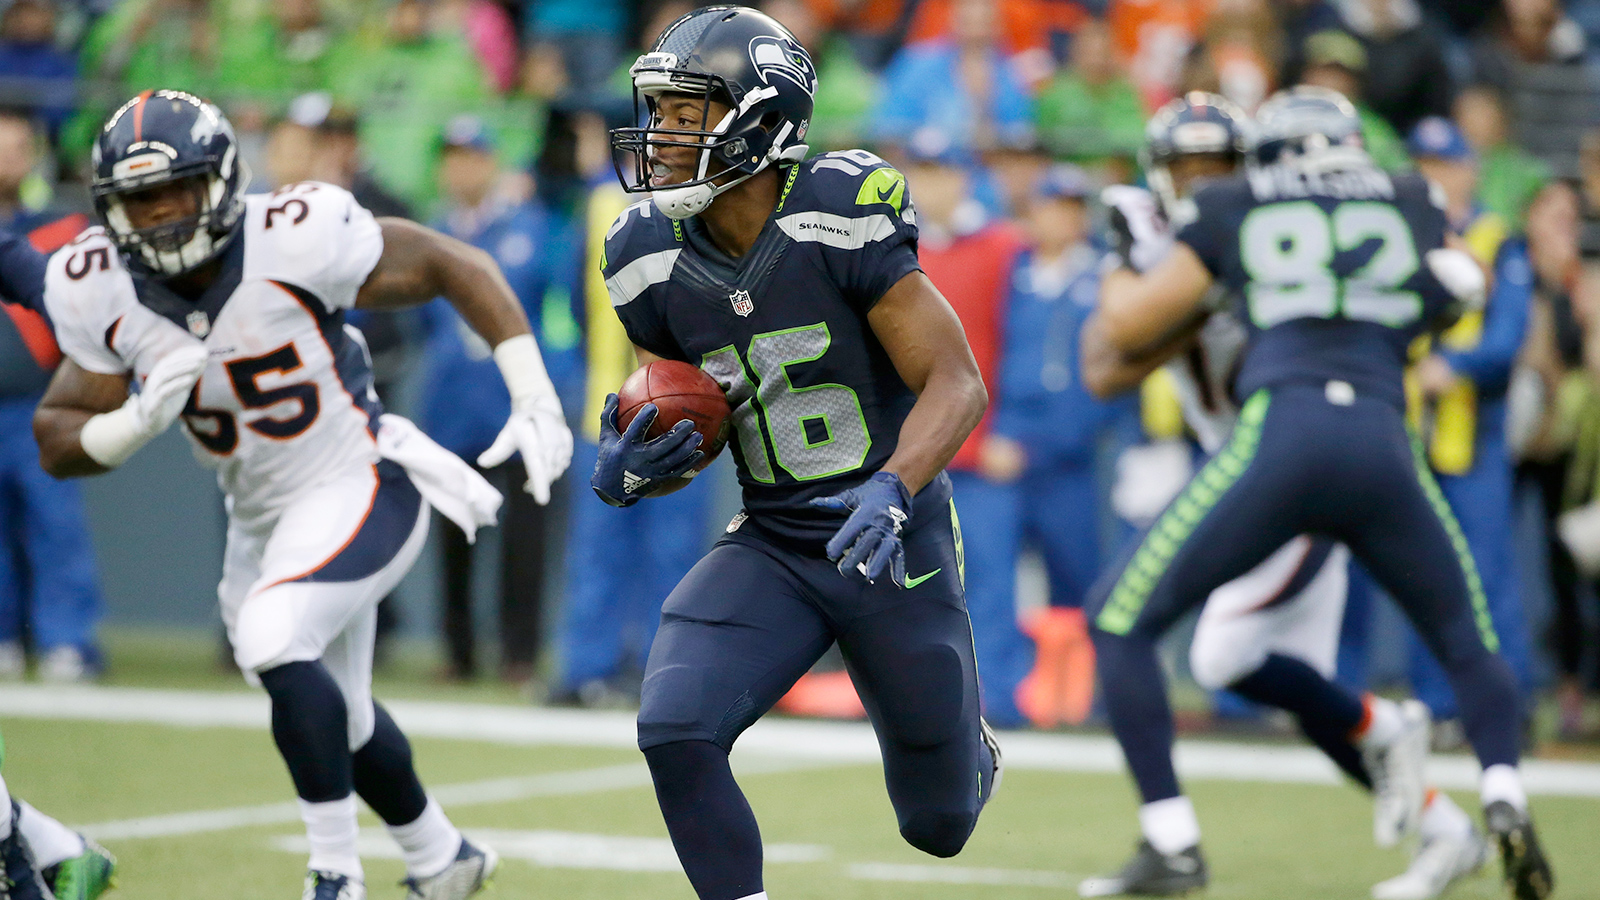 Teammates believe Tyler Lockett is poised to make big impact in 2015